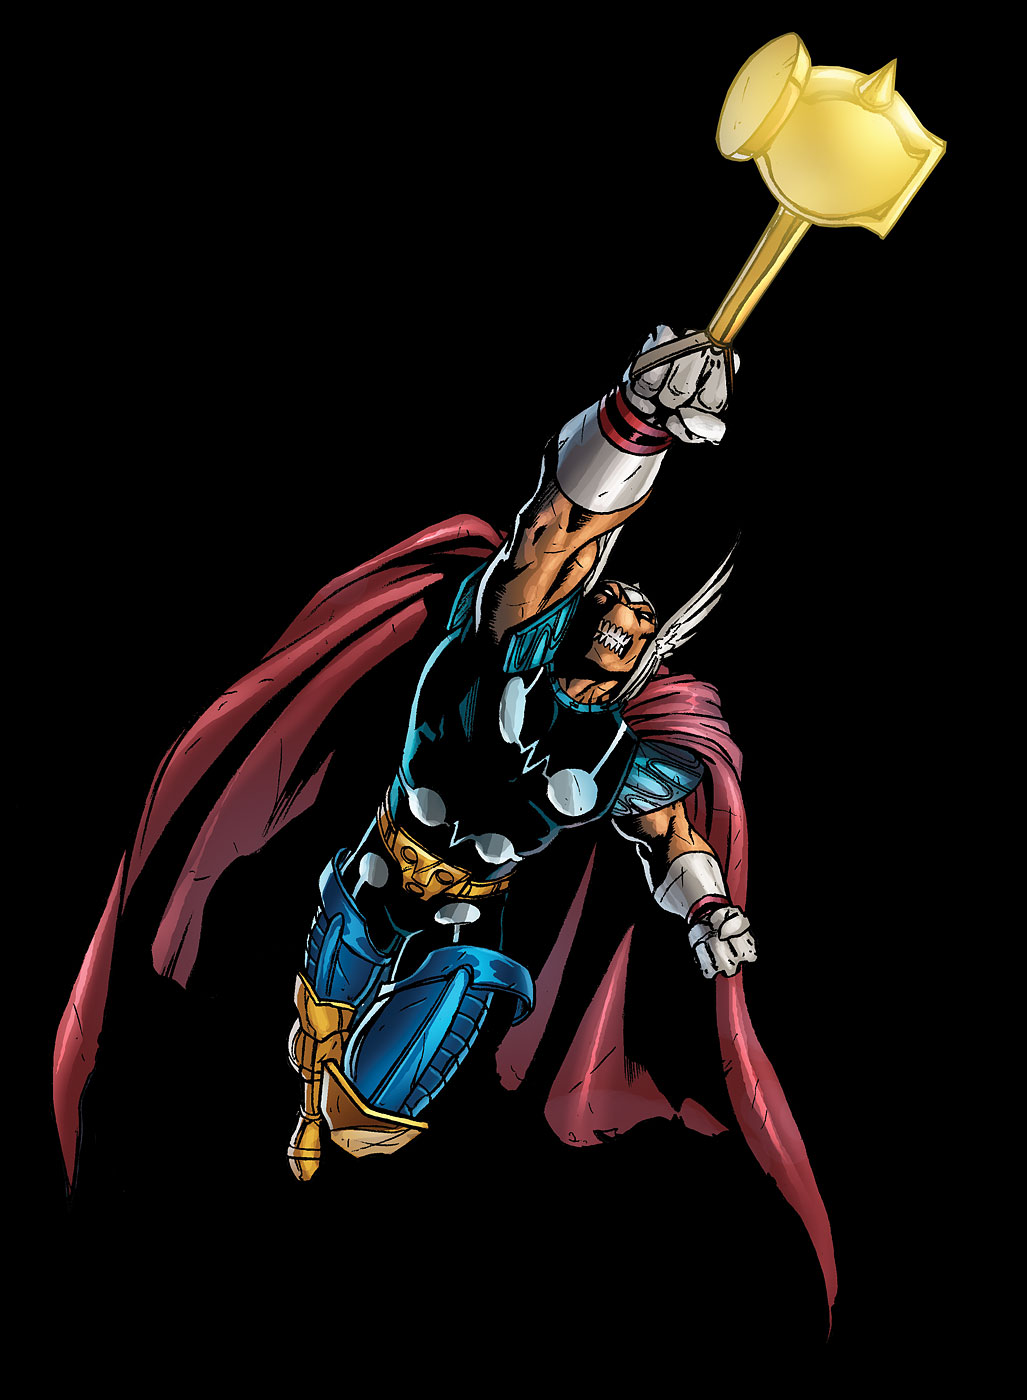 In 1983, Beta Ray Bill, an alien from the Korbonite race was deemed worthy to lift Mjolnir, thus granting him the powers of Thor. He would later return the hammer to the Thunder God and was granted the mystical hammer Stormbreaker by Odin as a reward.